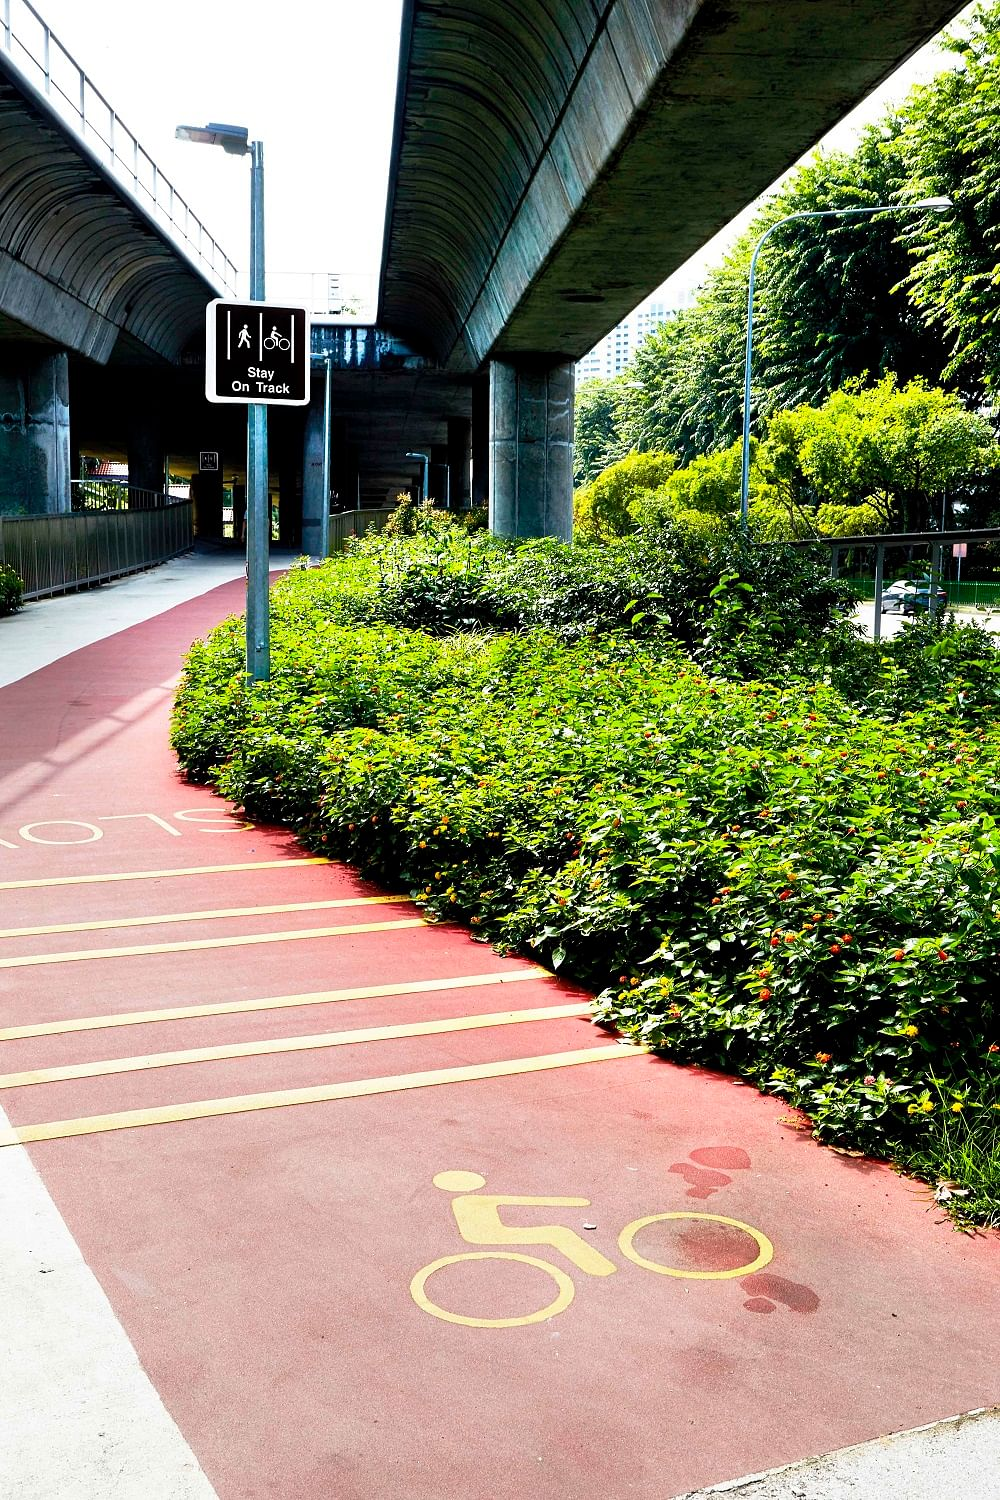 Hdb interior design in singapore 4 room flat at jurong east hwa li - For A Greener Way To Travel Ang Mo Kio Is Set To Become Singapore S First Cycling Town By 2018 An Extensive Network Of Walking And Cycling Paths